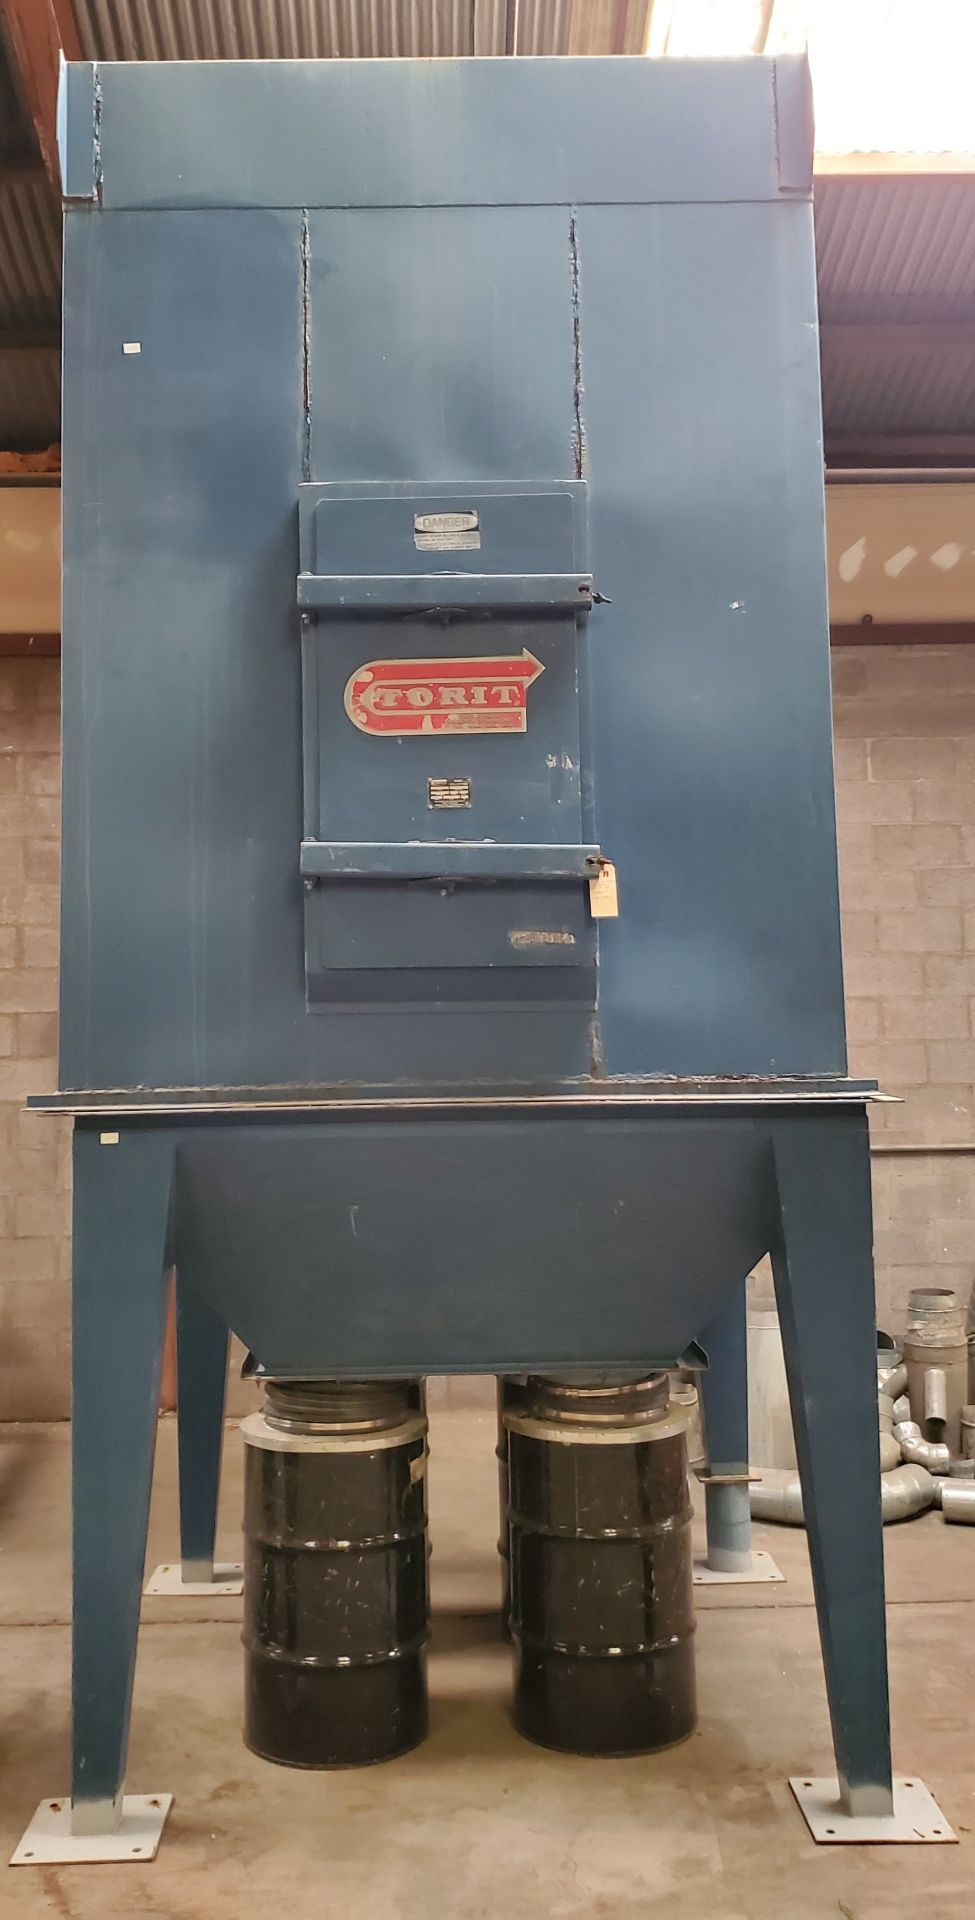 Lot 11 - Torit Bag House Dust Collector, Model #MIC-770-455 230/460 Volts 15 HP 3 Phase W/4 Steel Drums